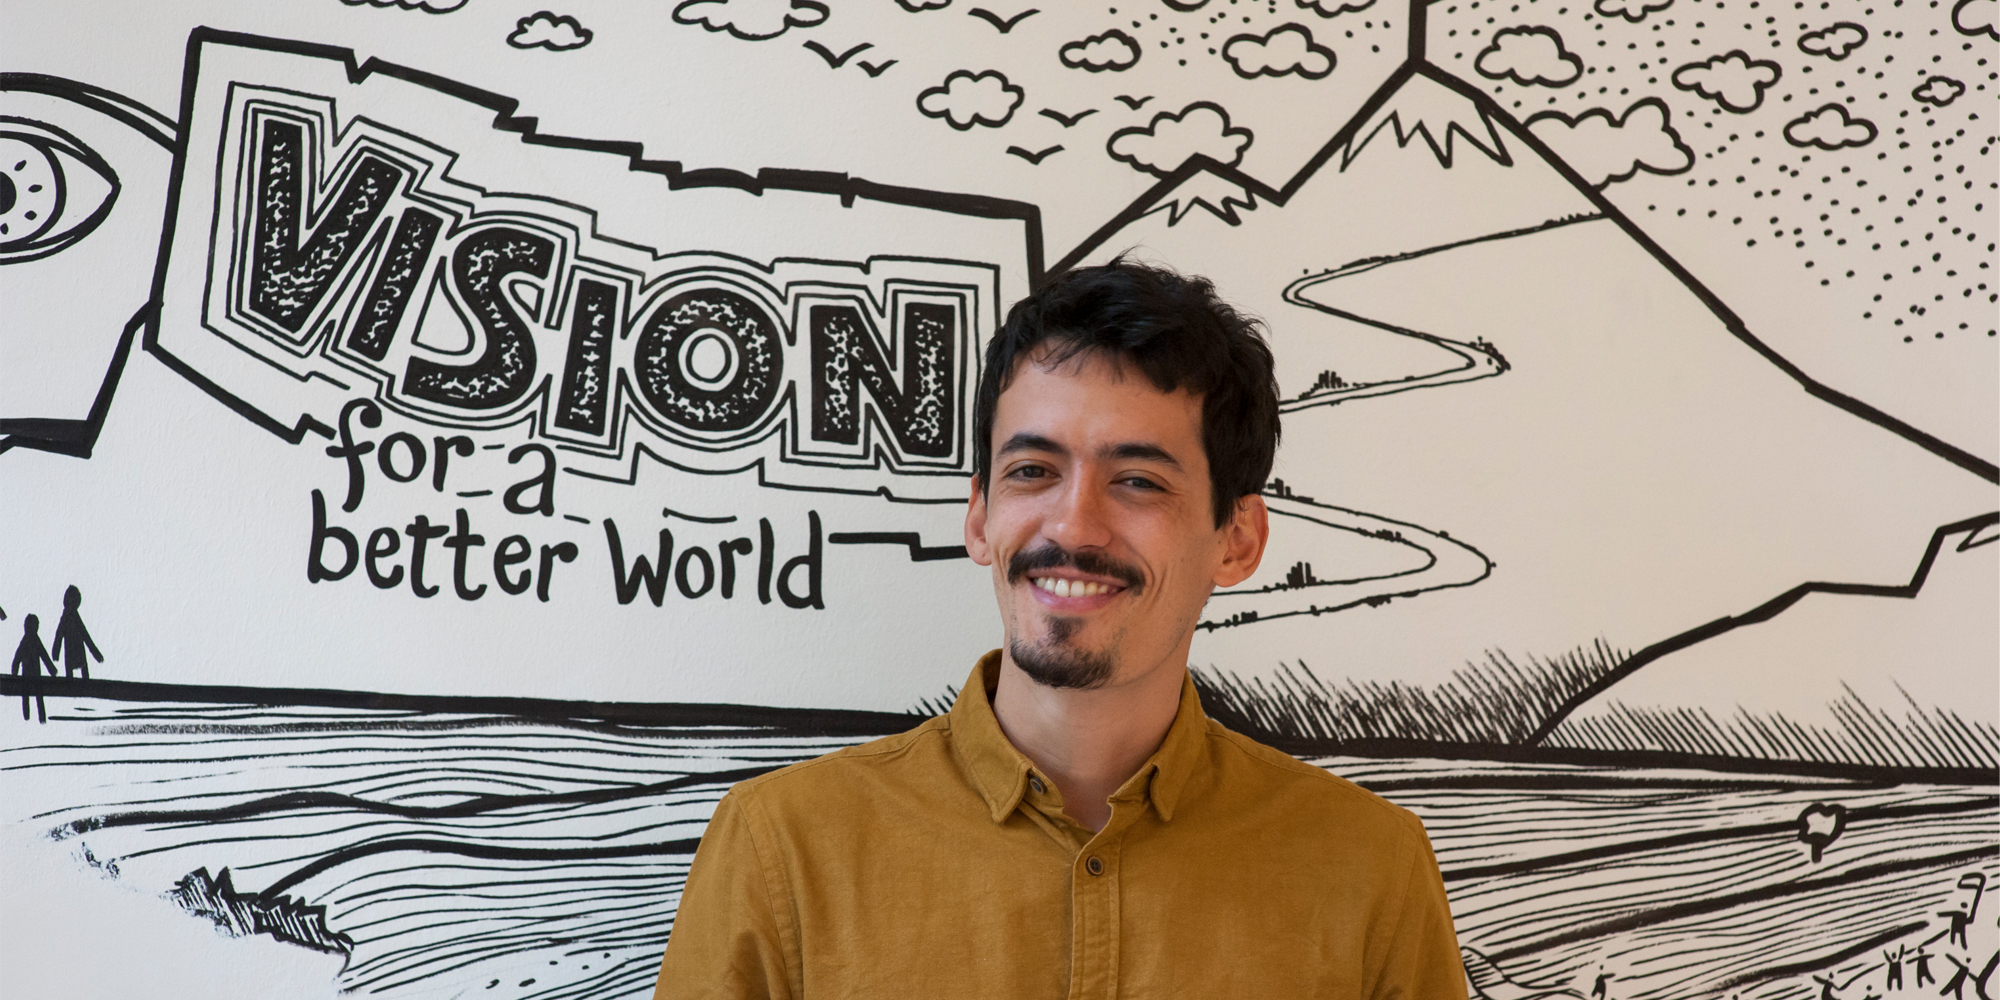 Daniel Escorel, Brazil, participant in the GCLP 2018